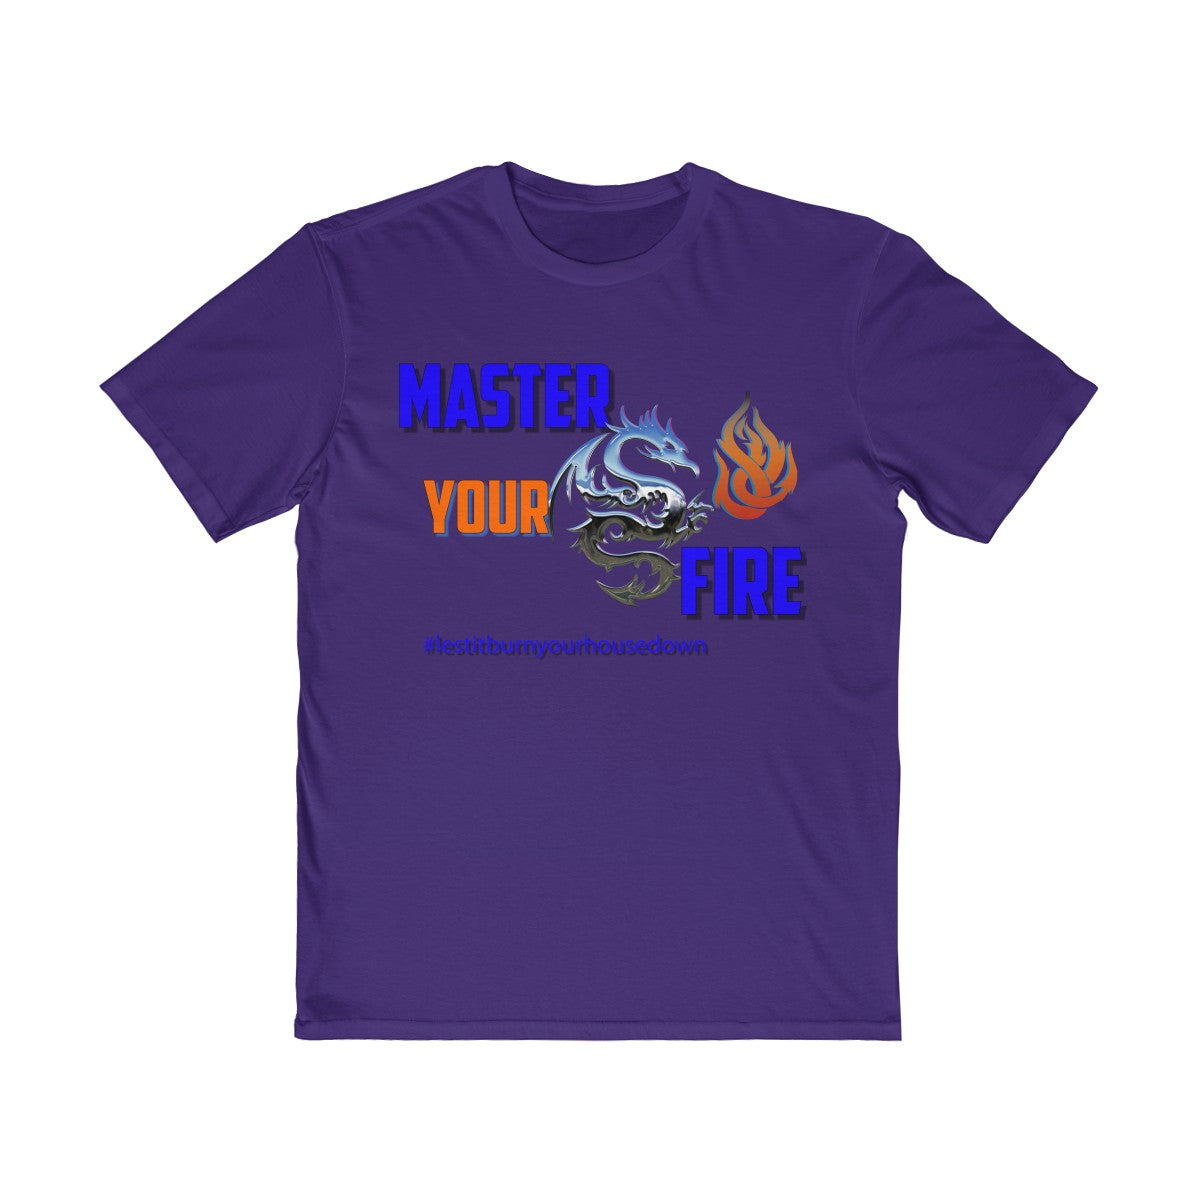 Men's Very Important Tee - Master Your Fire